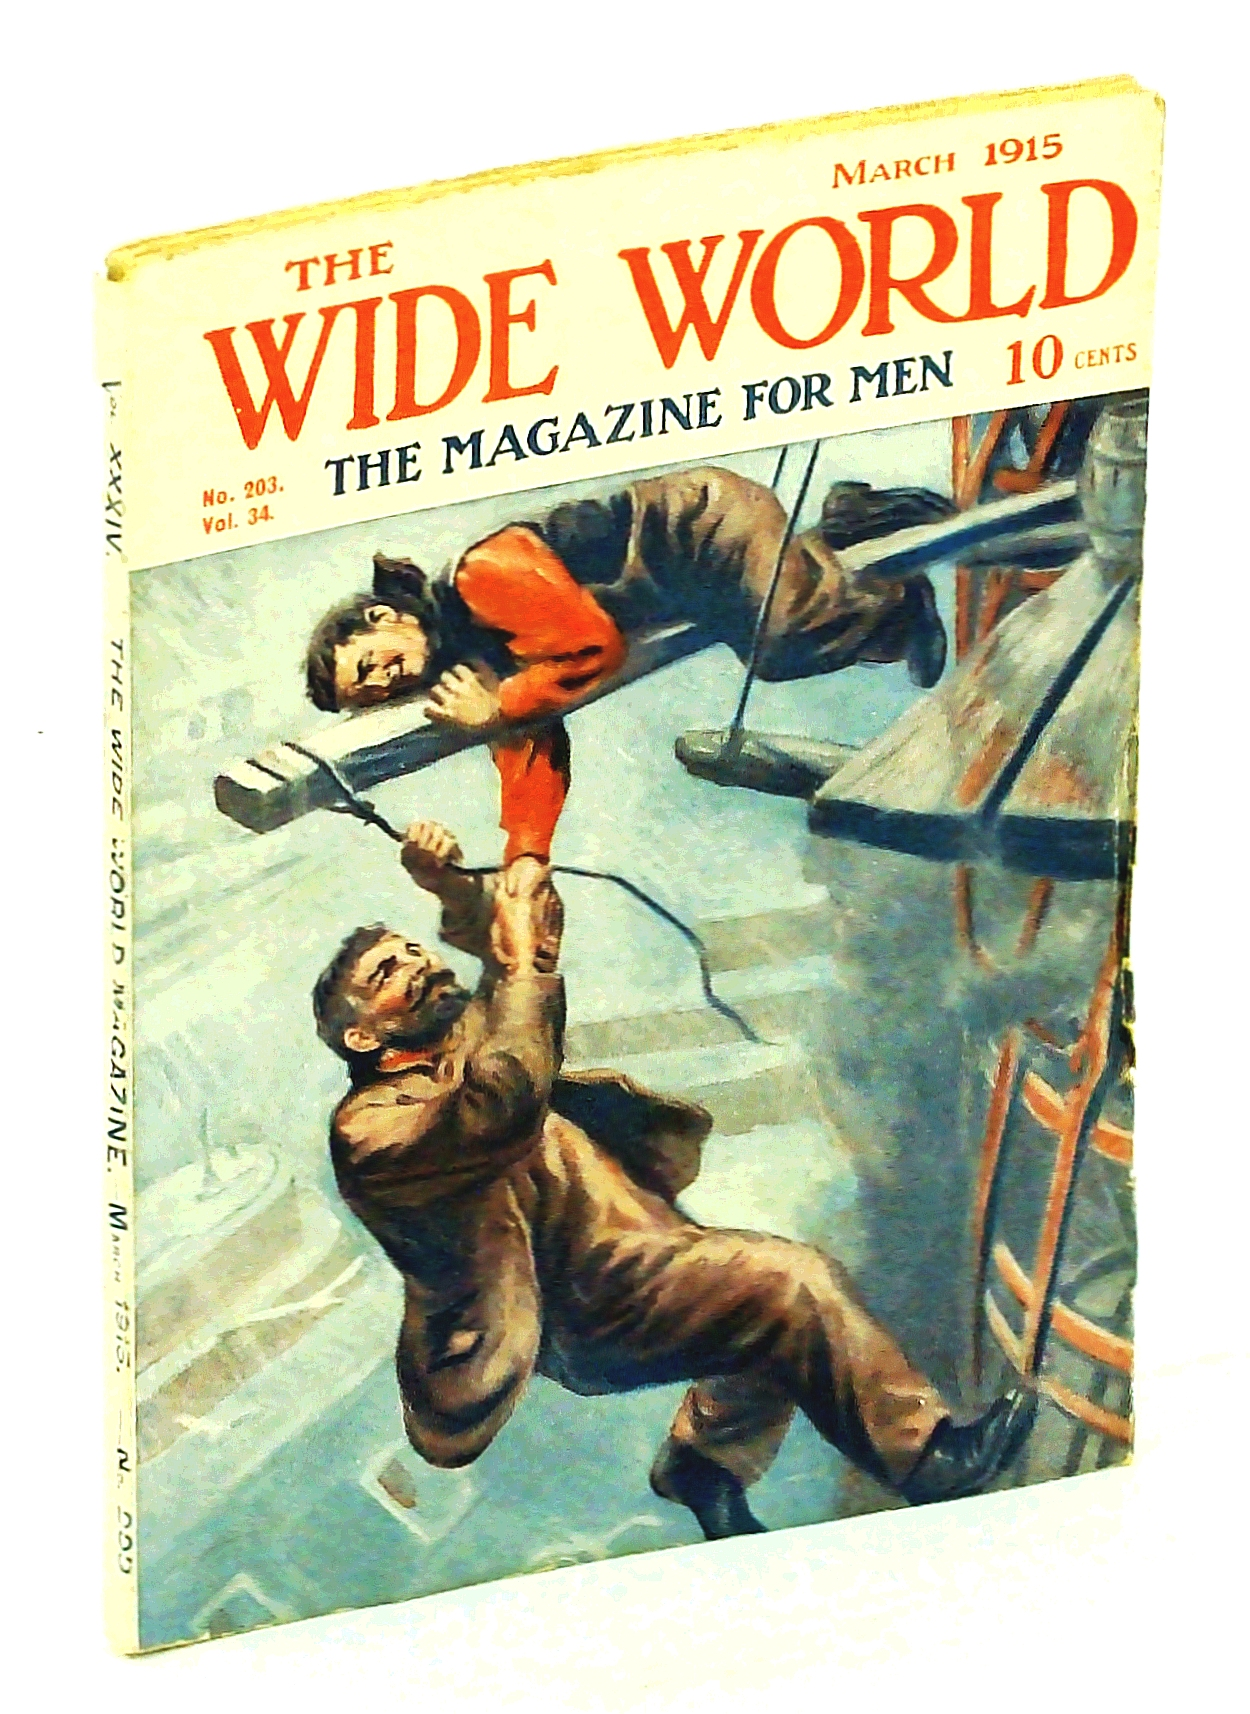 Image for The Wide World Magazine, March [Mar.] 1915, Vol. 34, No. 203: Our Travels in Safari-Land / Crapsey, The Sky-Worker